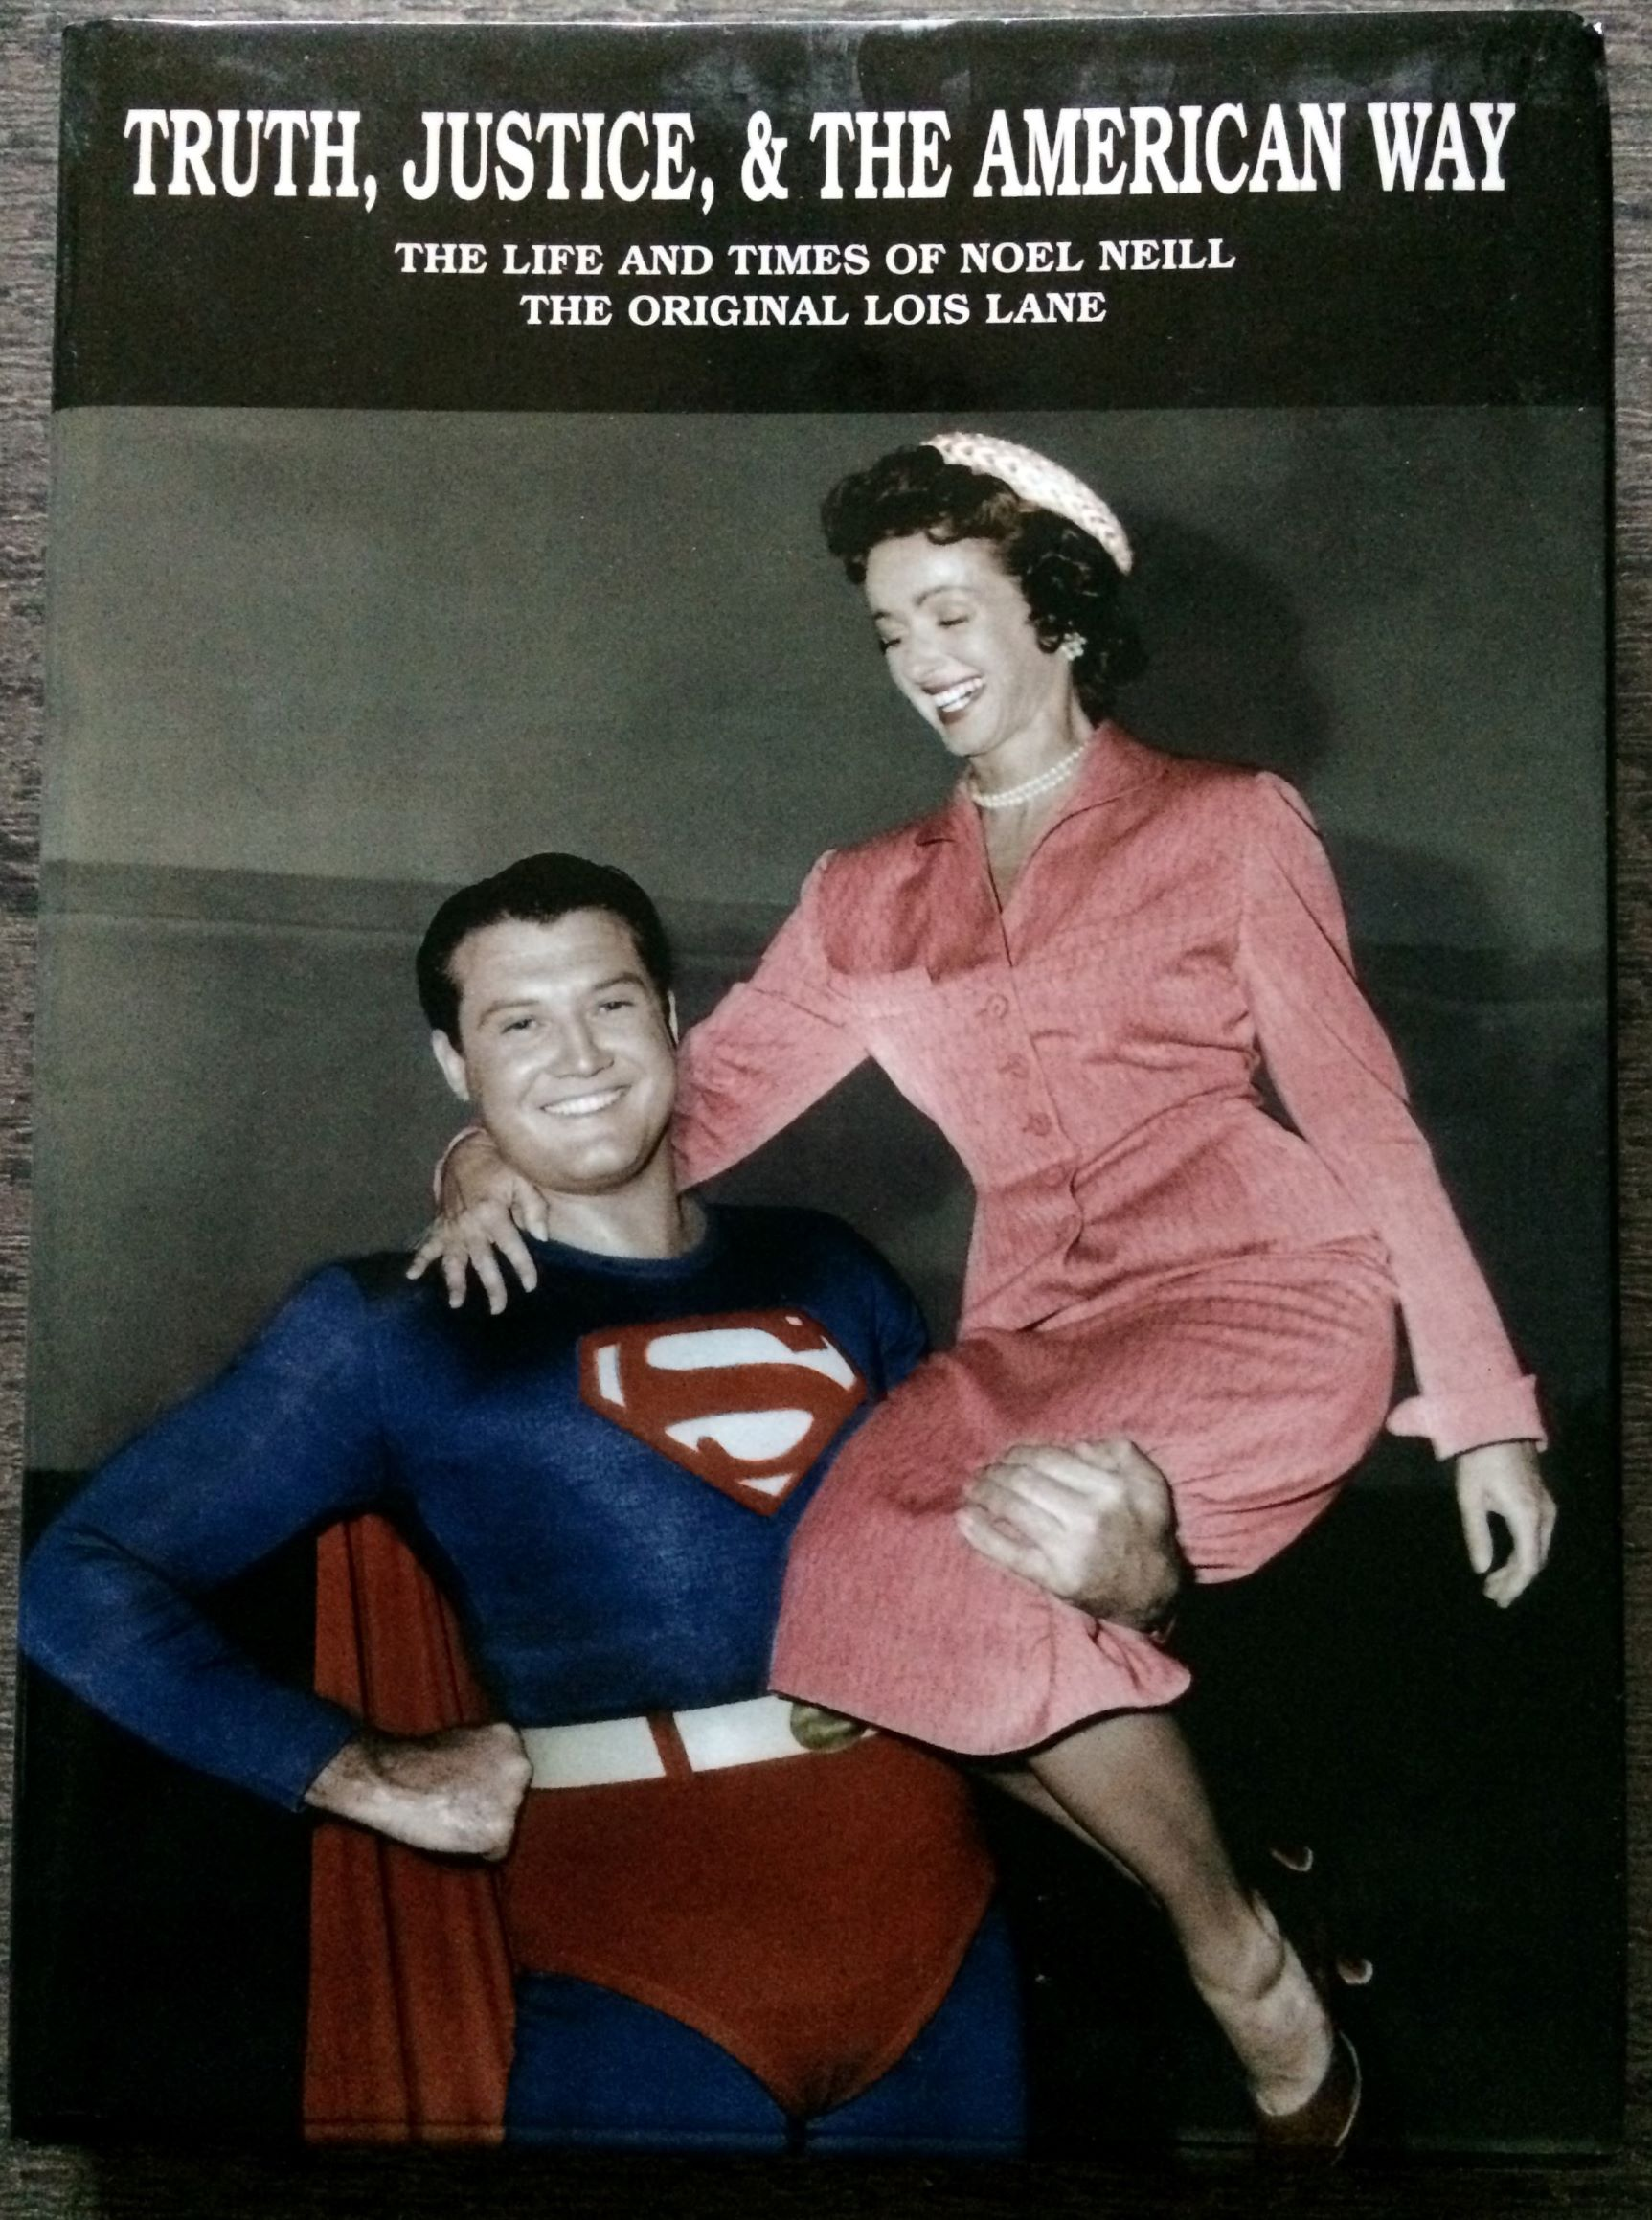 Image for Truth, Justice, & The American Way. The Life and Times of Noel Neill, The Original Lois Lane. (Signed by Ward and Neill).